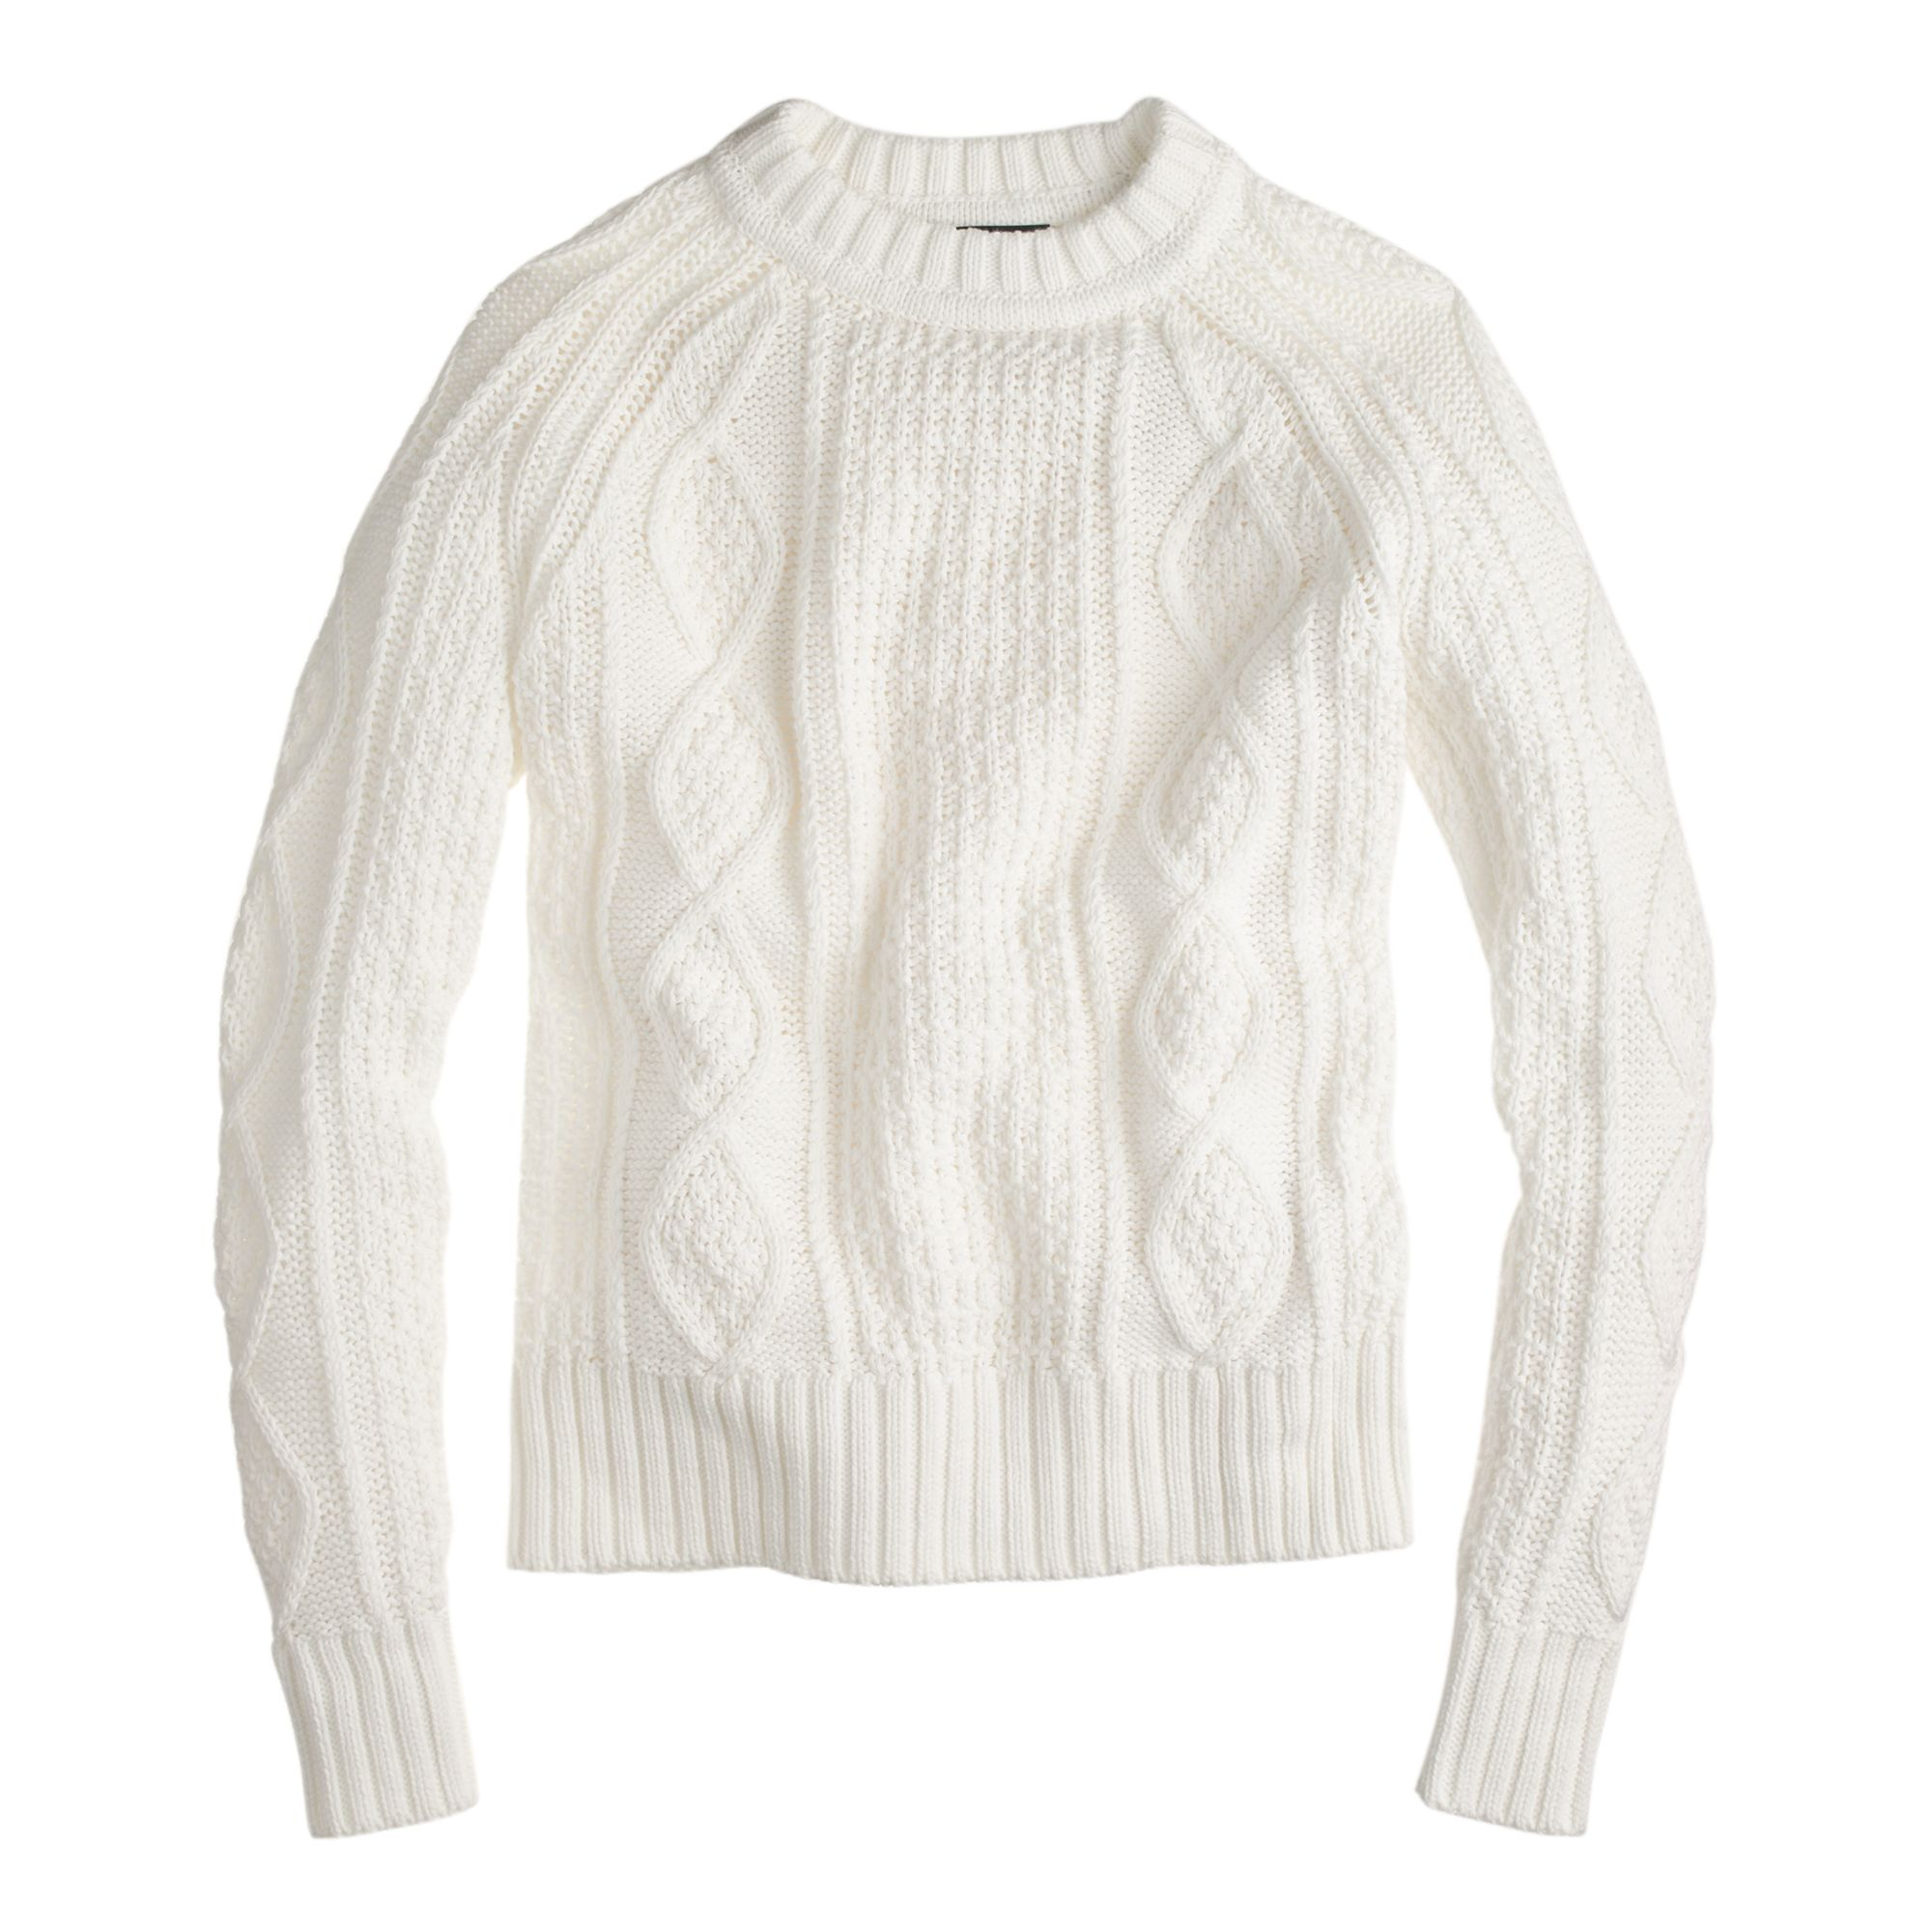 J.Crew women's cotton cable sweater in ivory. | My Style ...